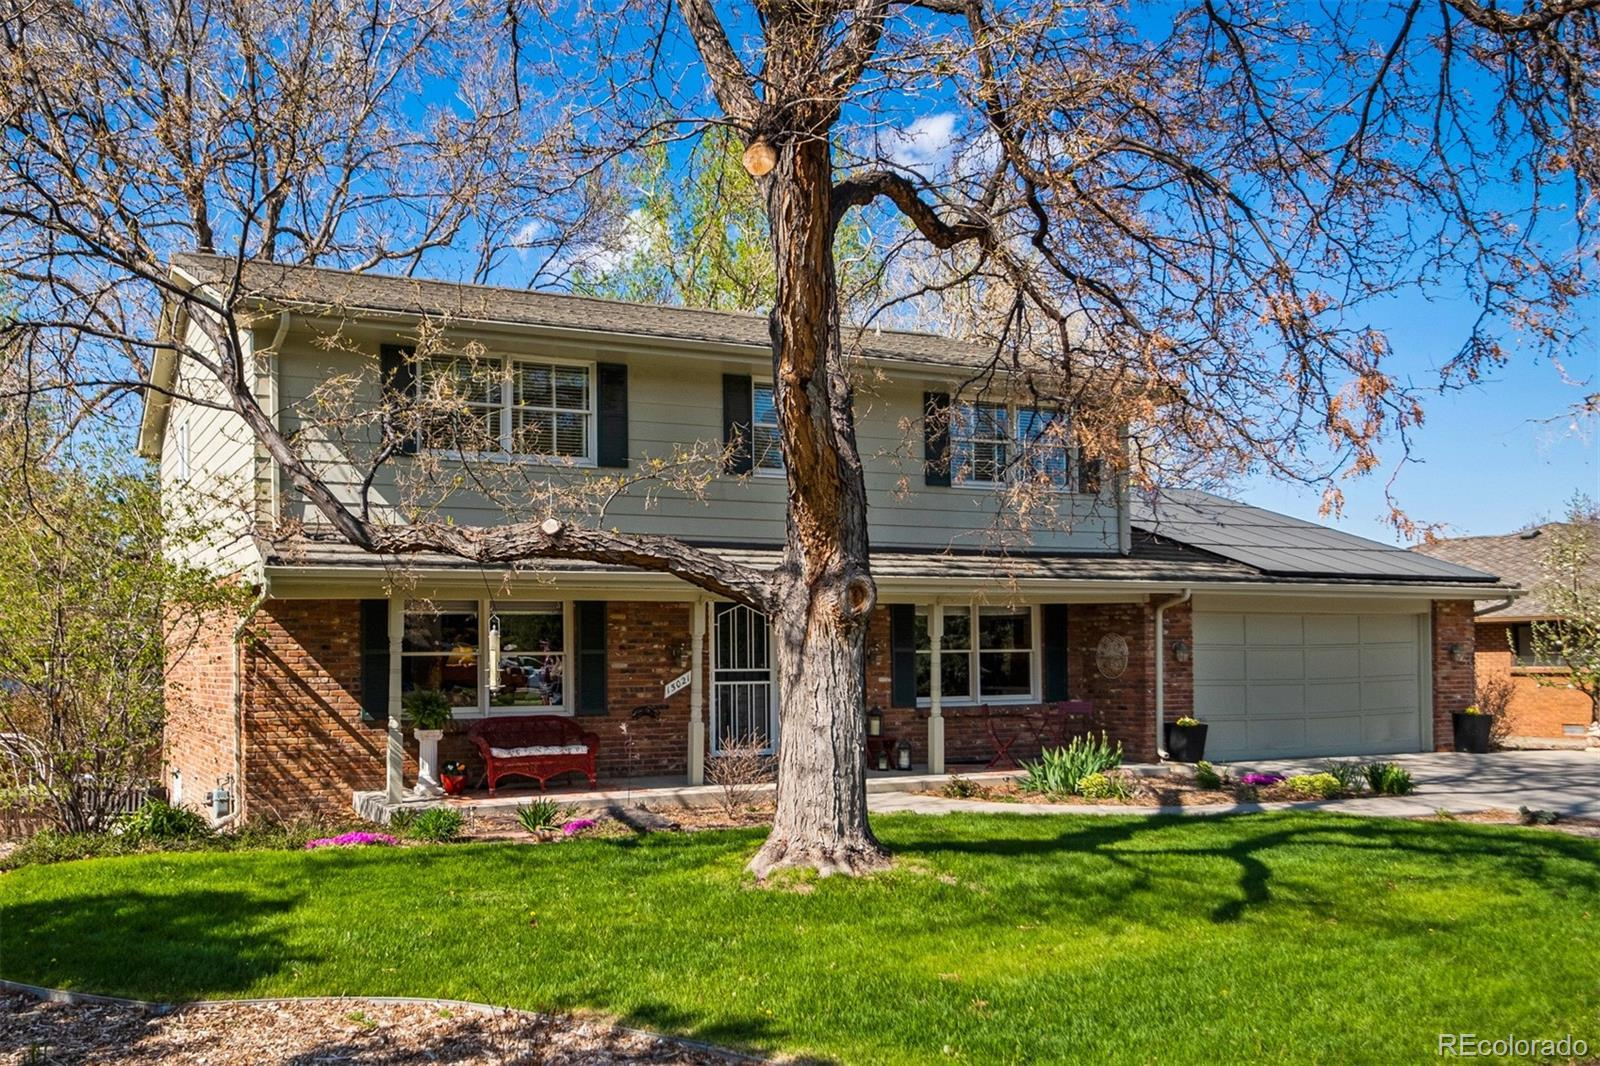 15021 W 29th Avenue, Golden, CO 80401 - MLS#: 2521242